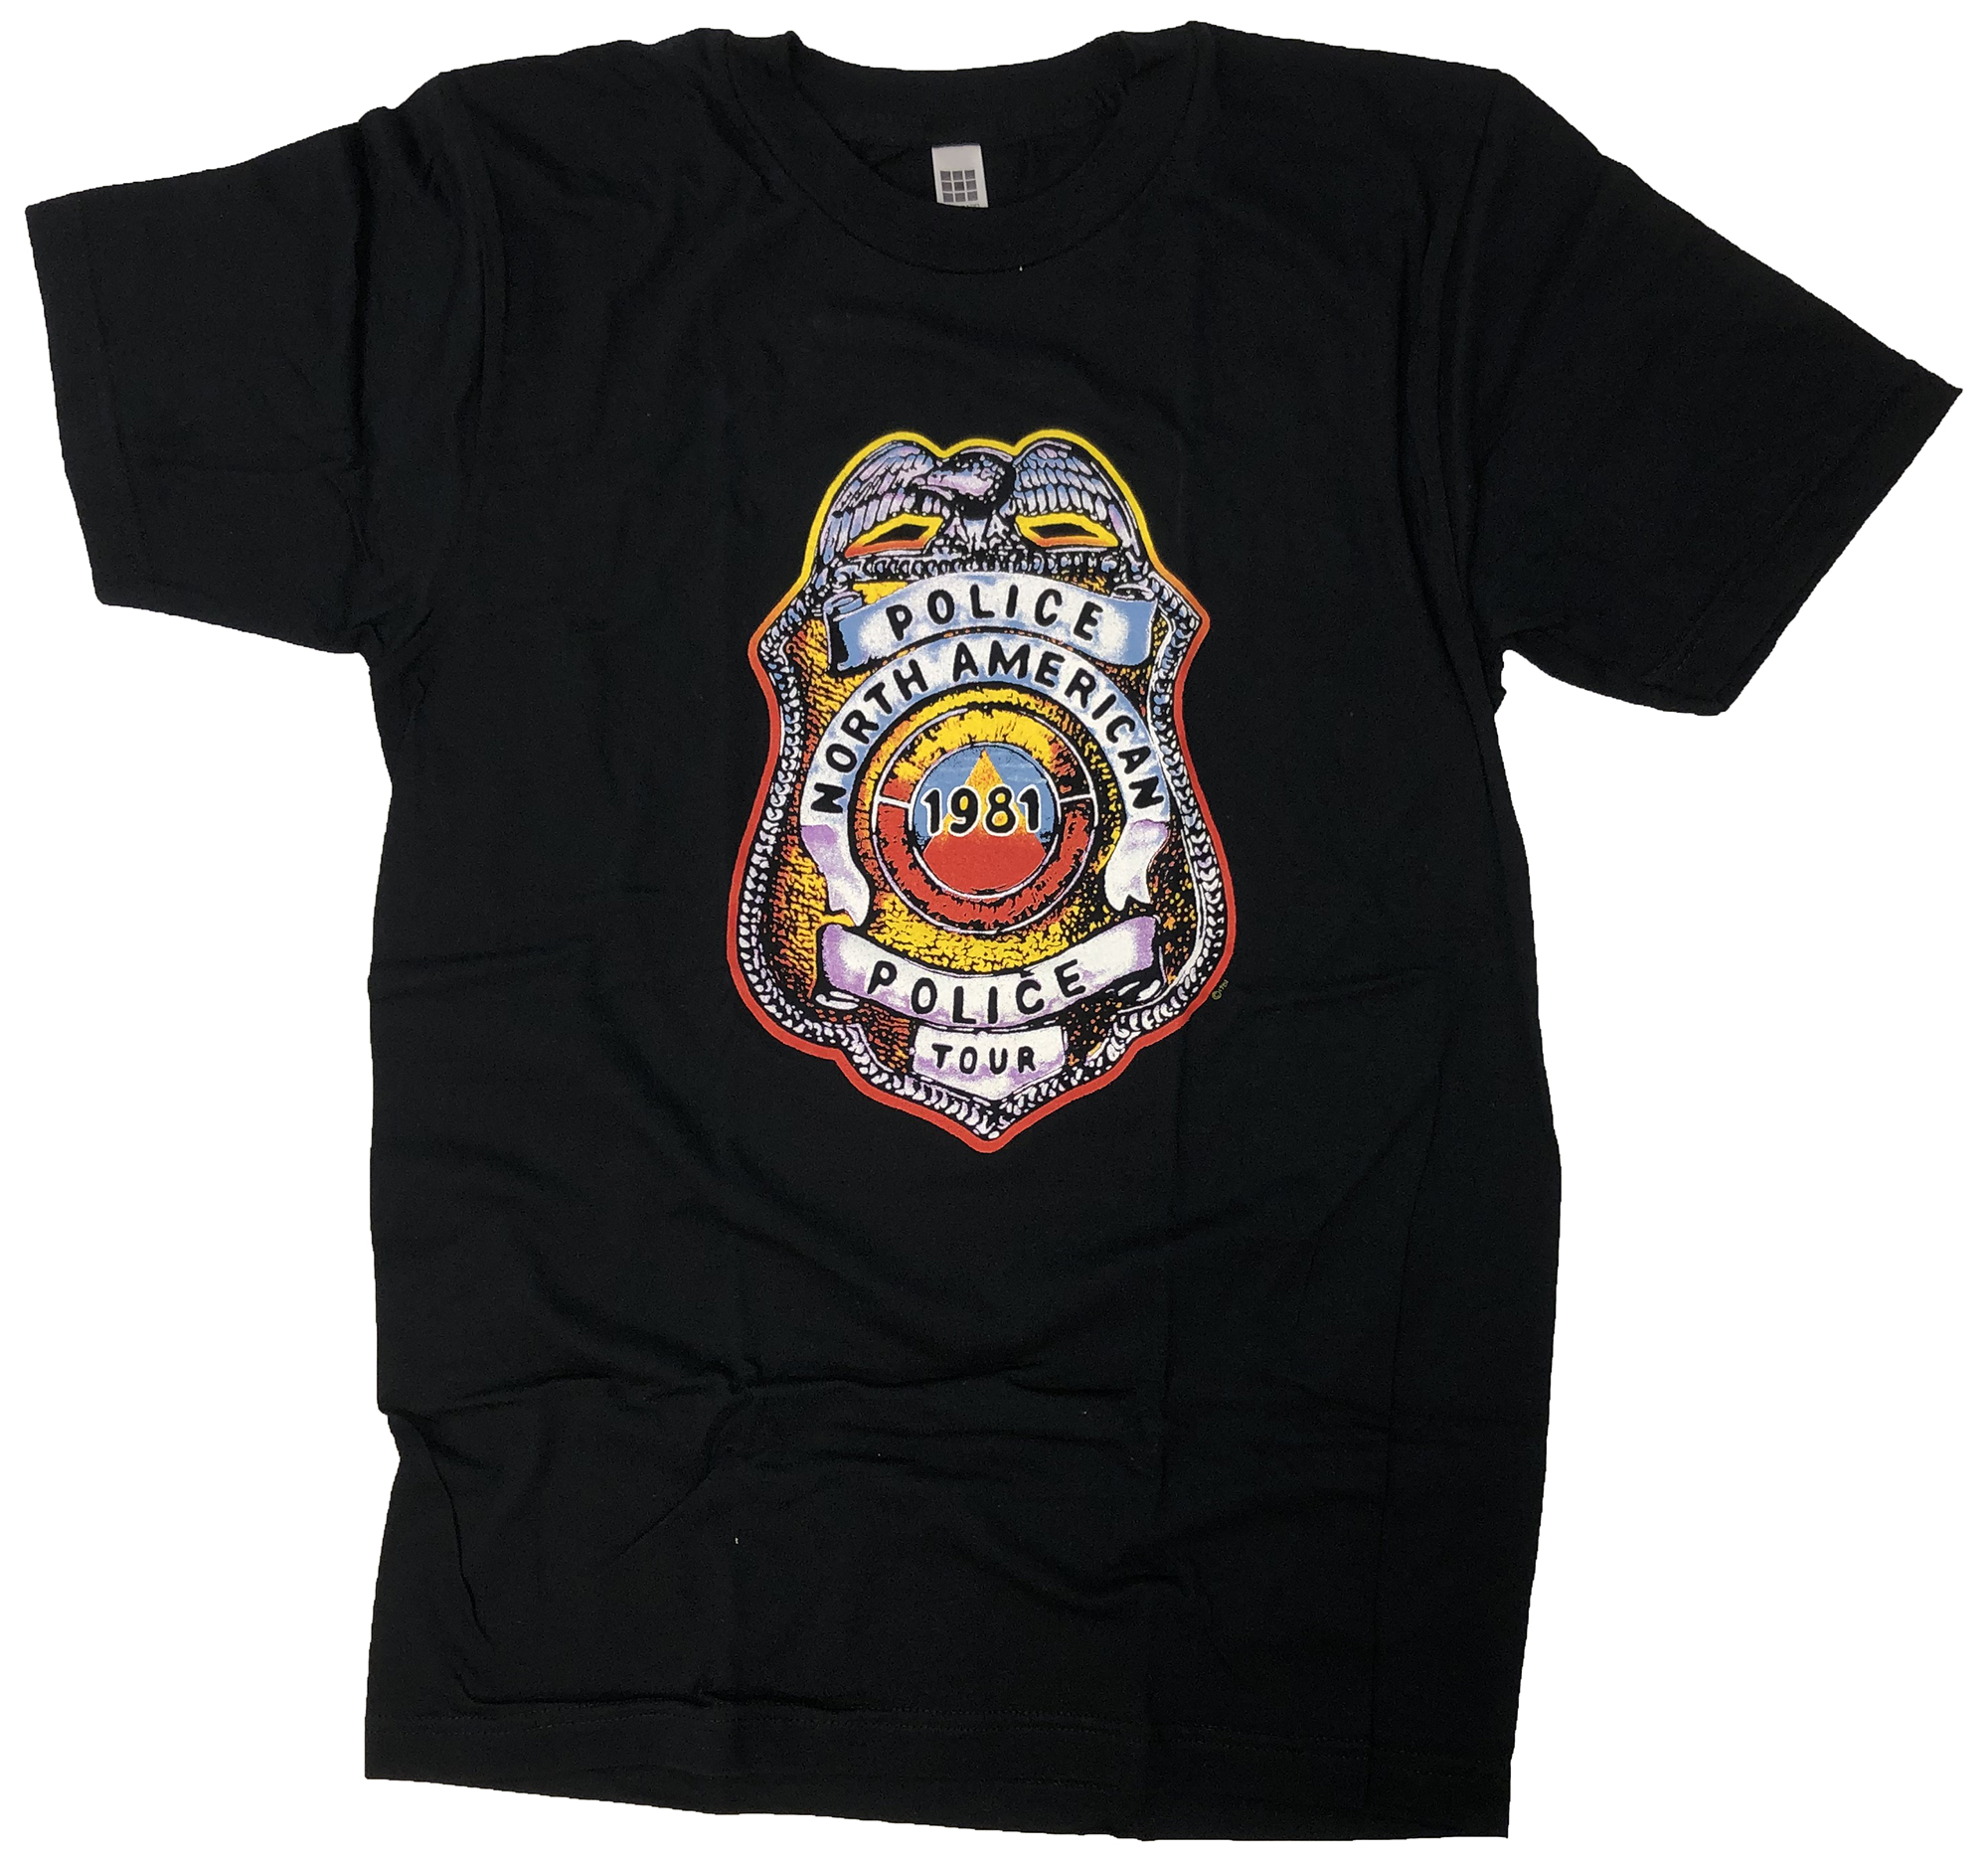 The PoliceWomen's Retro T-Shirt